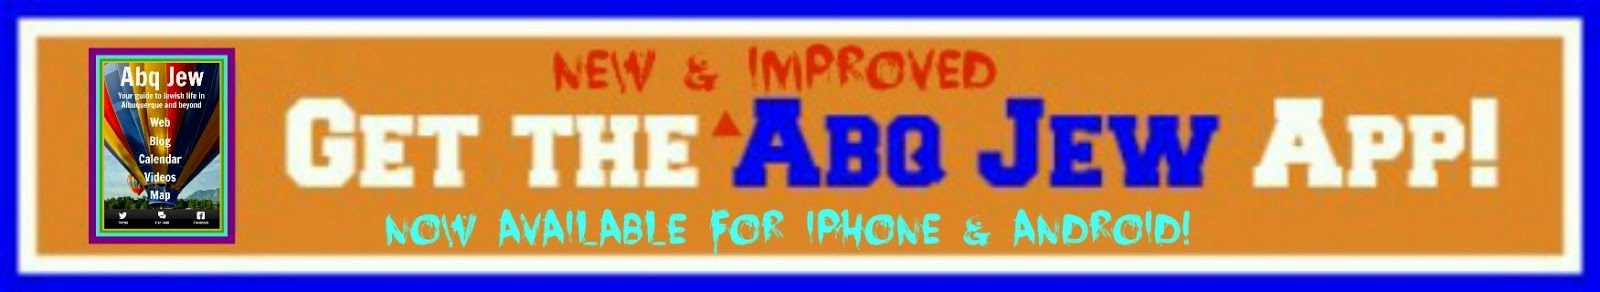 Get The New & Improved Abq Jew App!